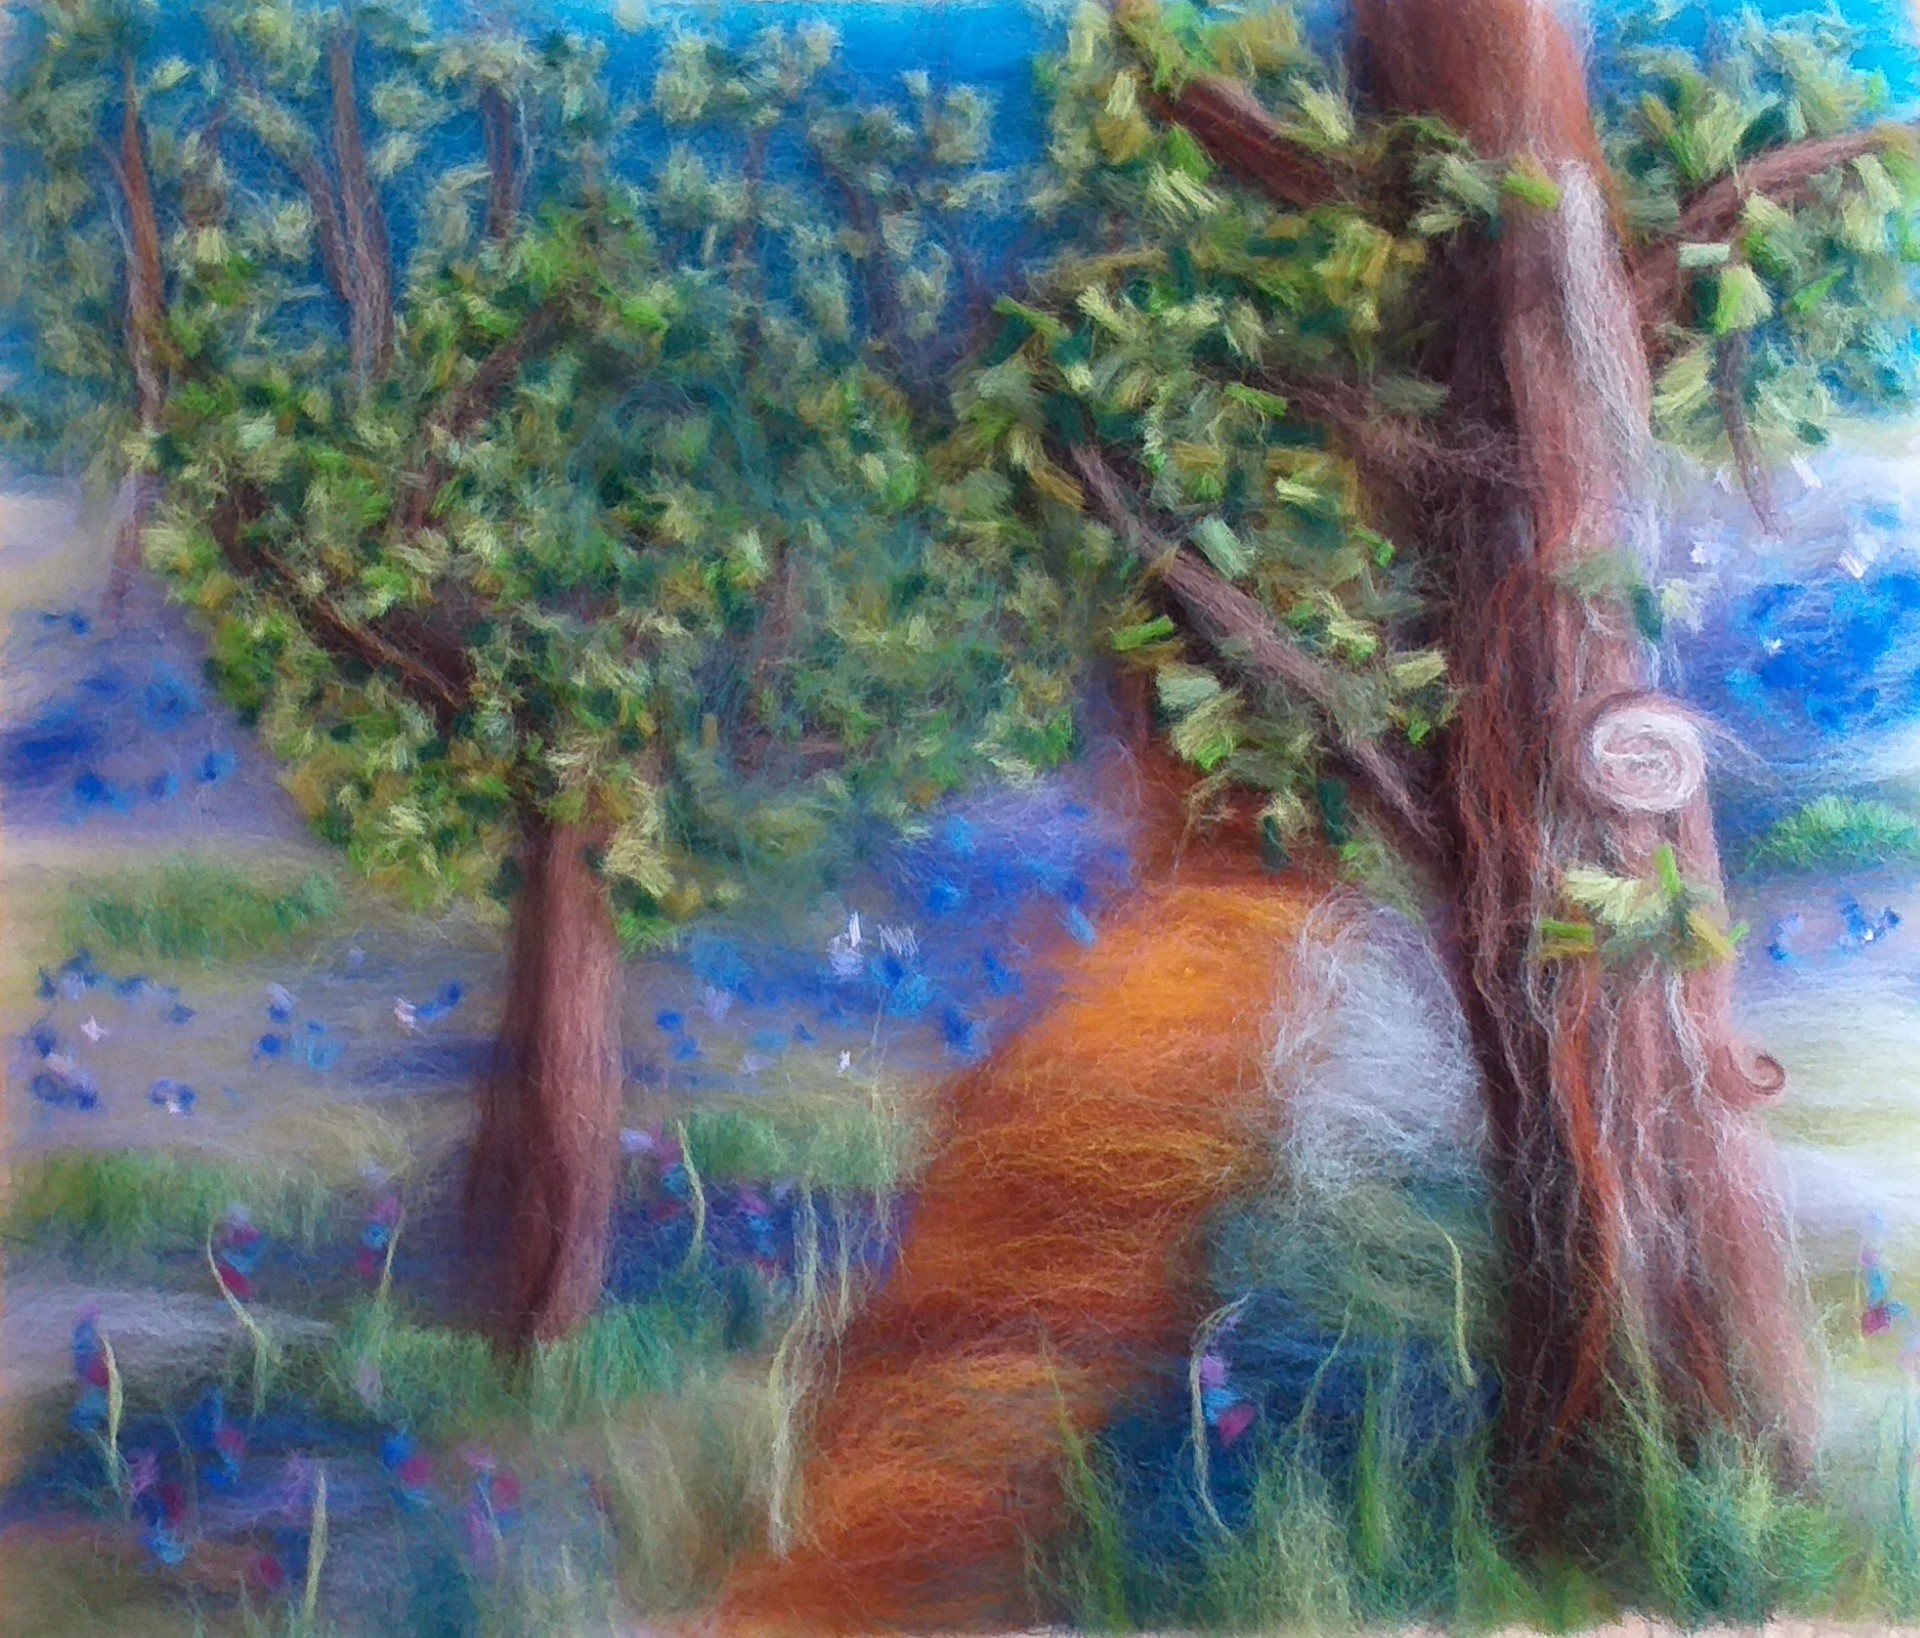 Clare's wool fibre painting with Bluebell woods made with merino wool fibres at Bevere Art gallery